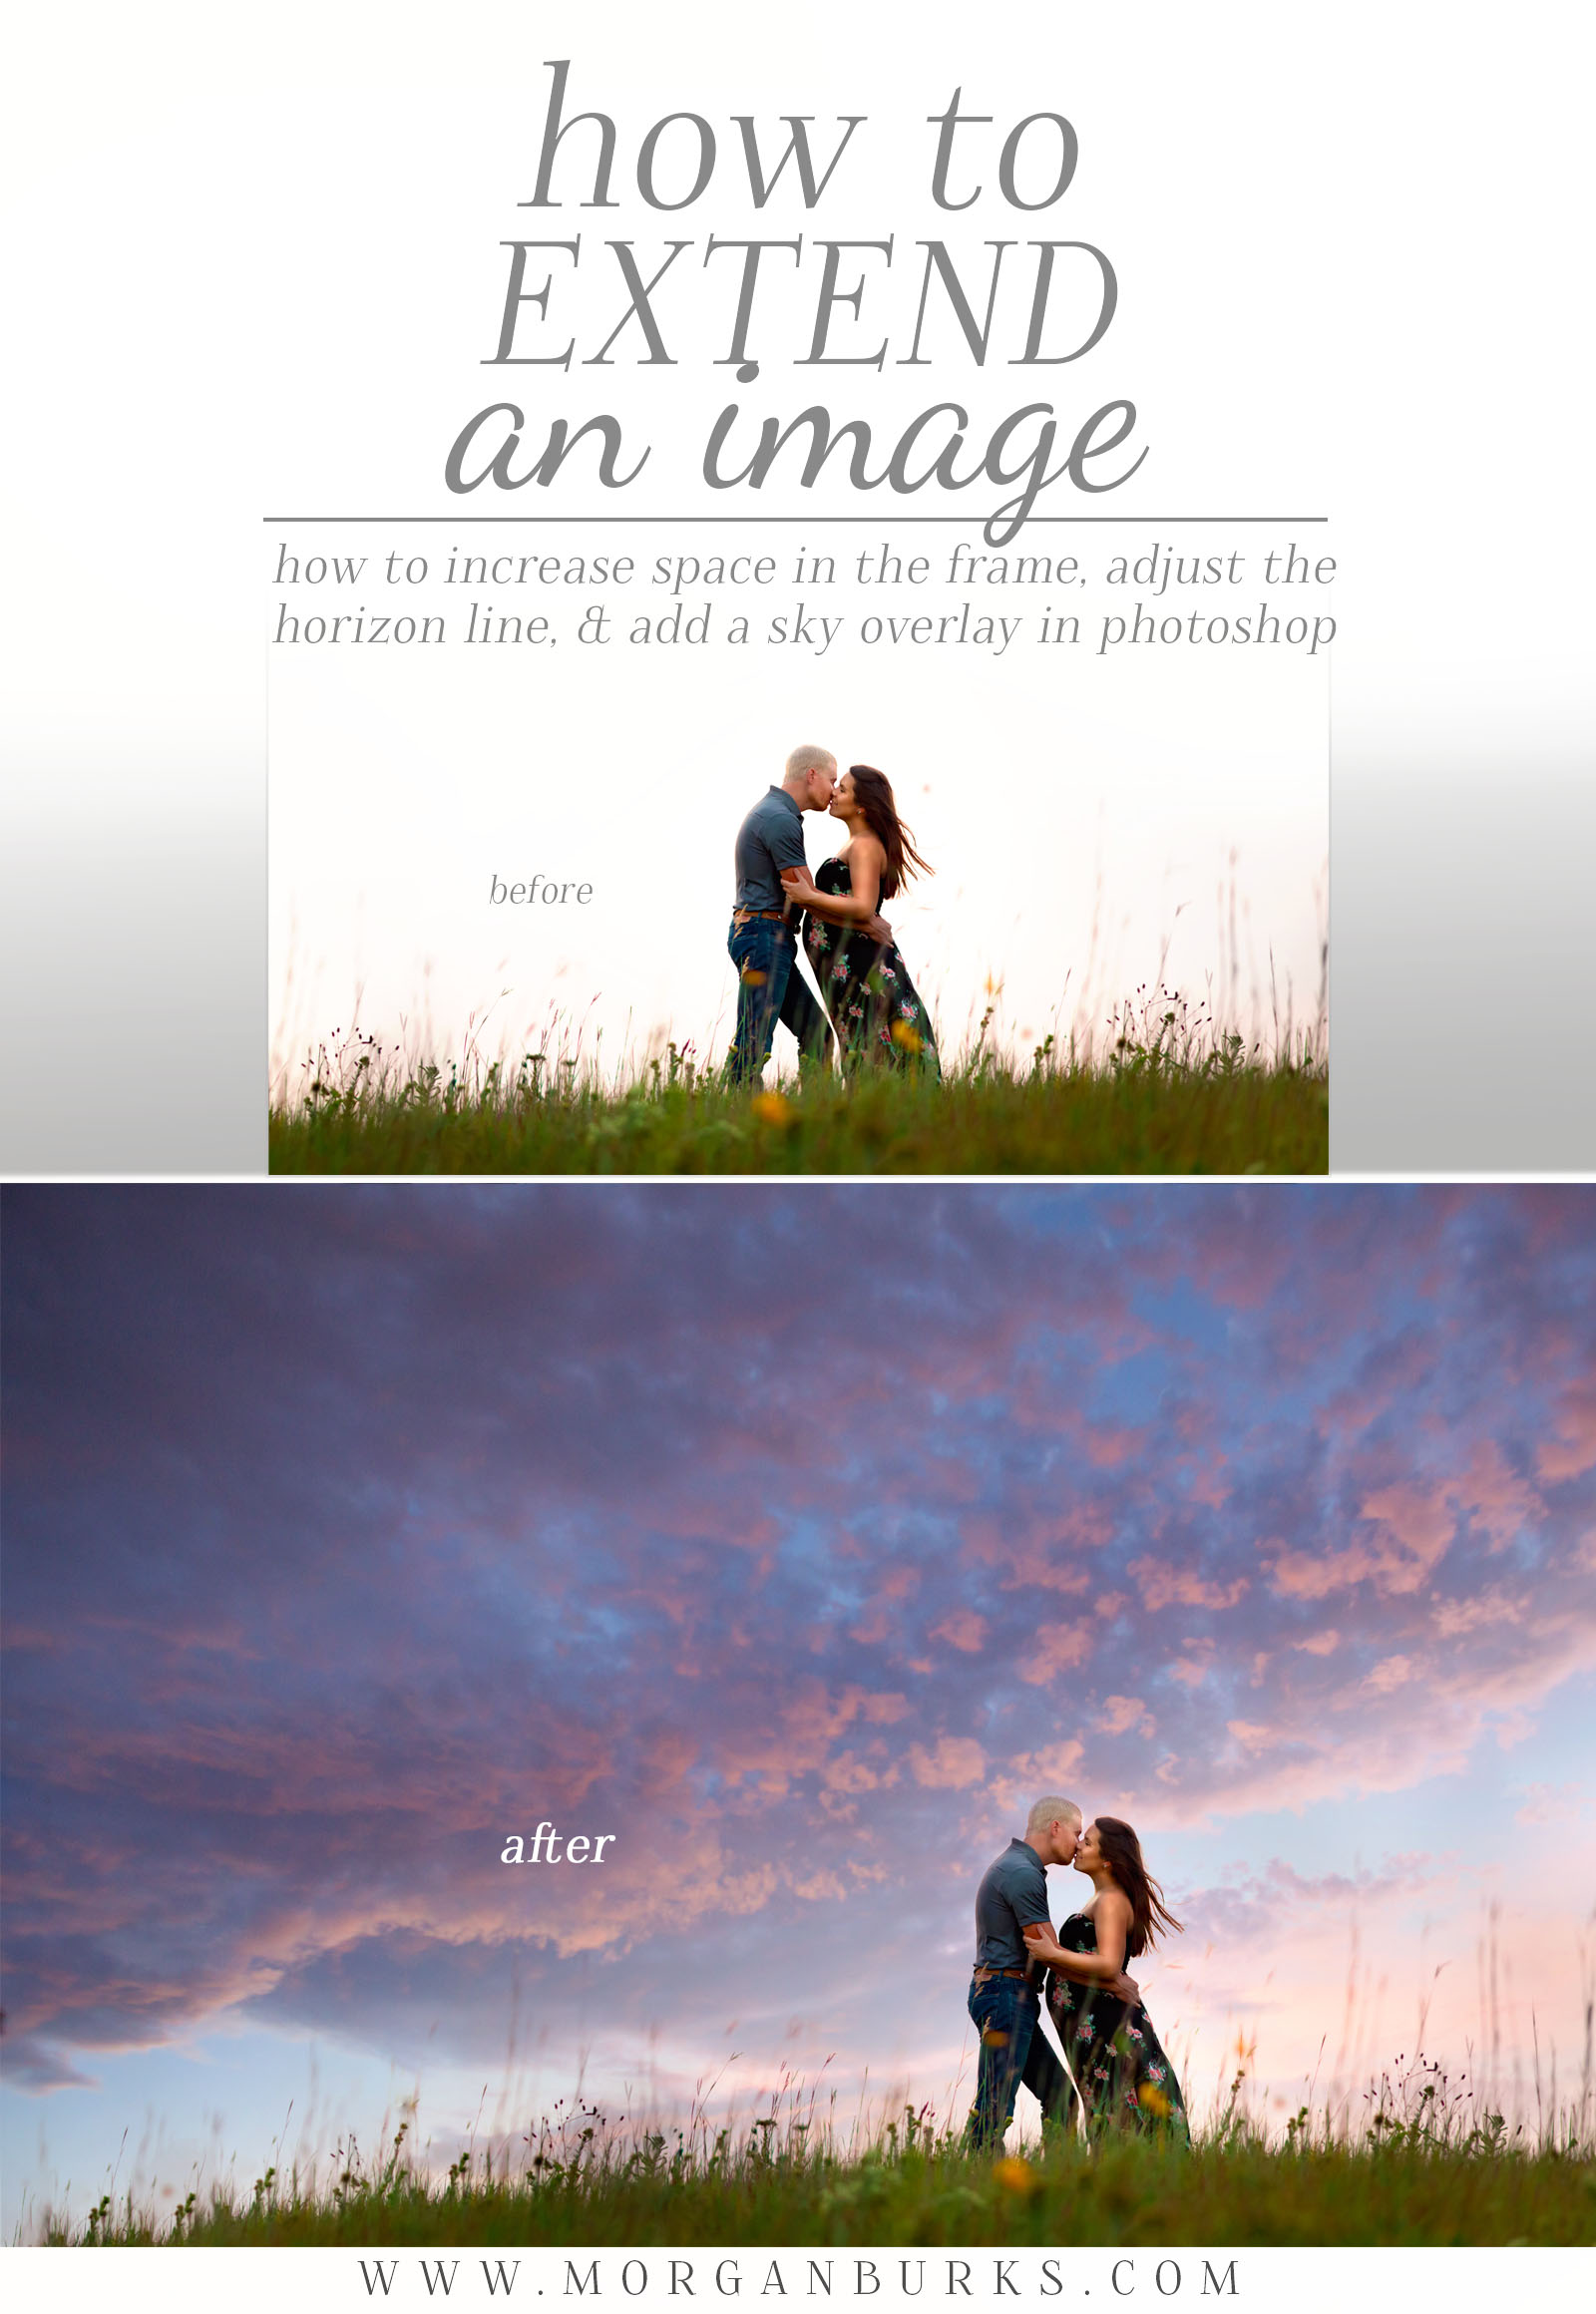 Free Photoshop Tutorial - How to extend an image and add a sky overlay.